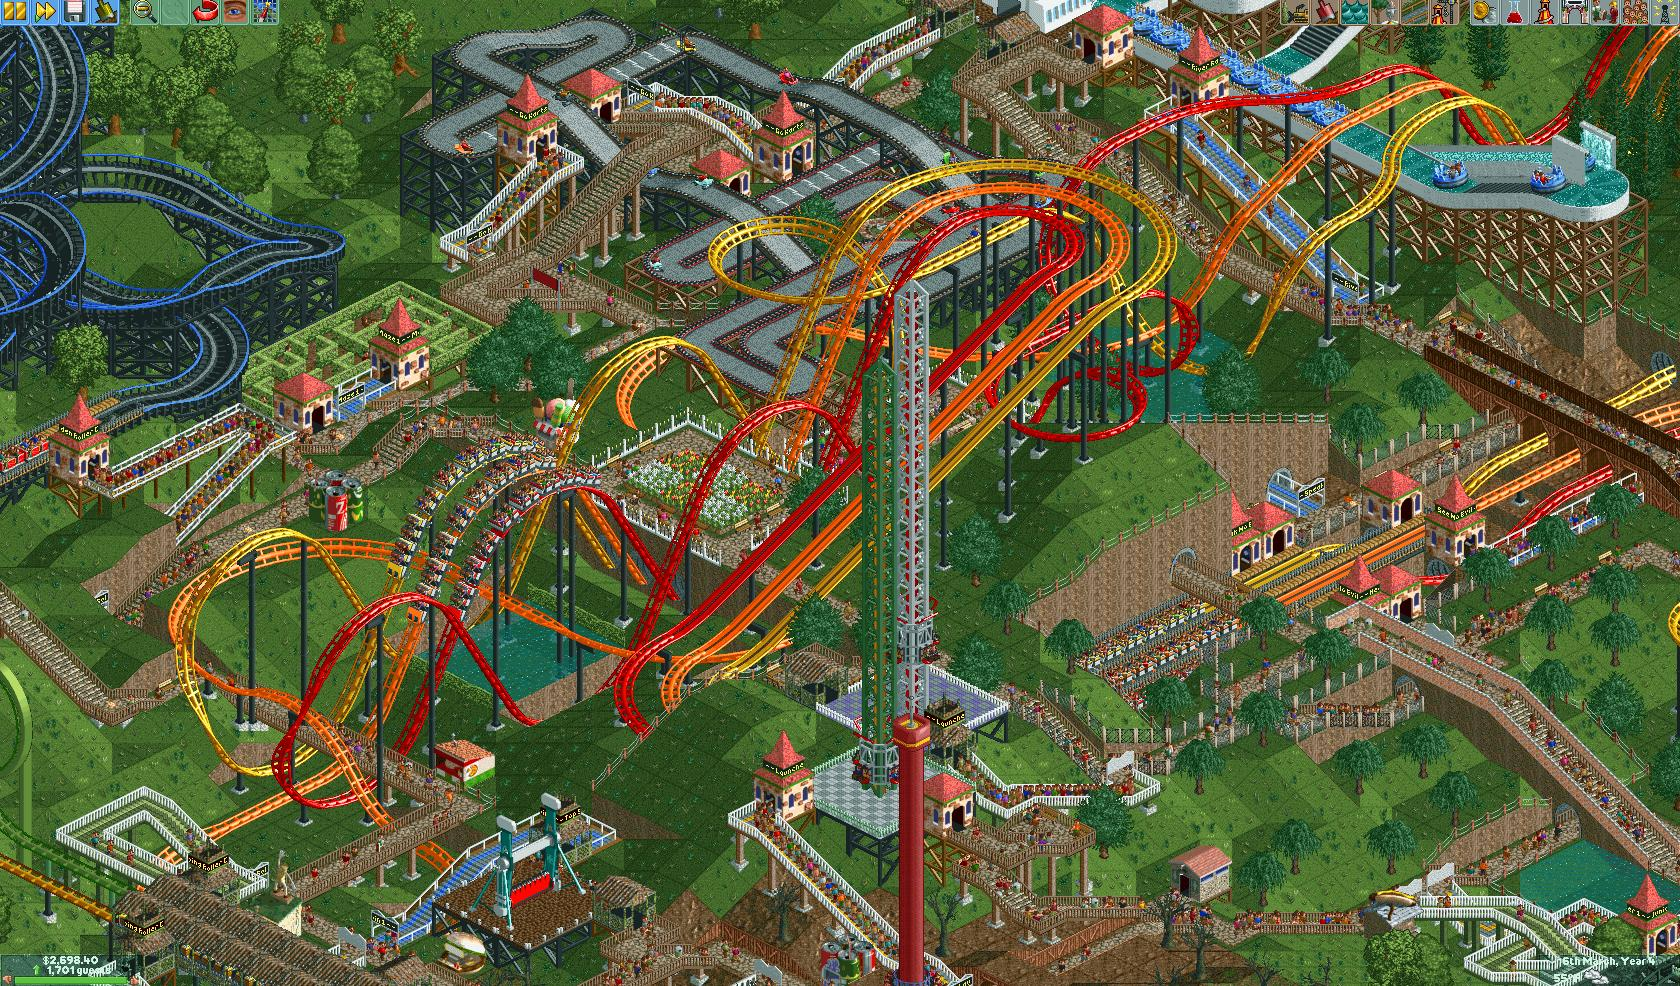 The Definitive RollerCoaster Tycoon Experience | RavingLuhn